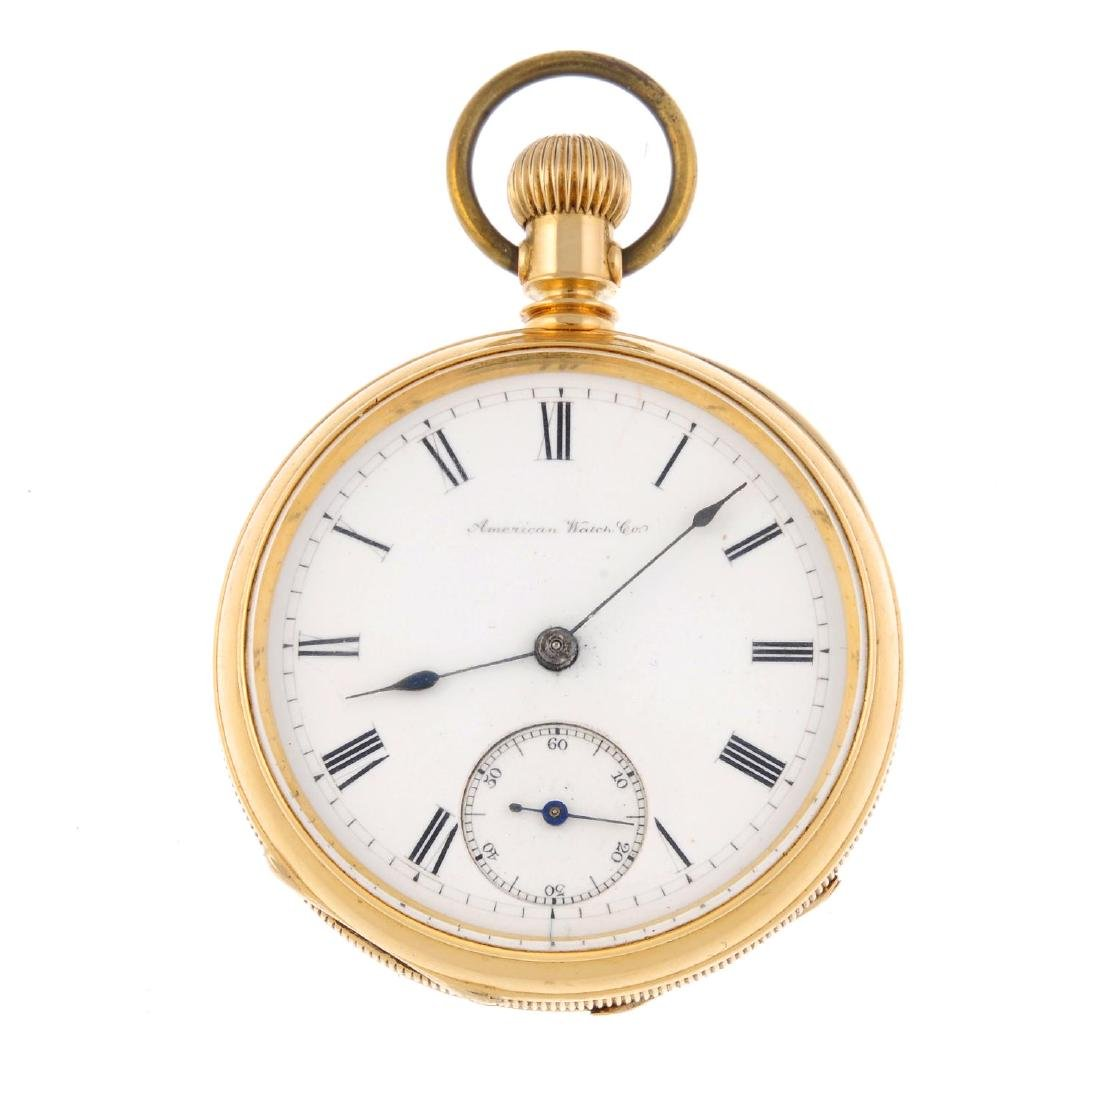 An open face pocket watch by American Watch Co. Yellow